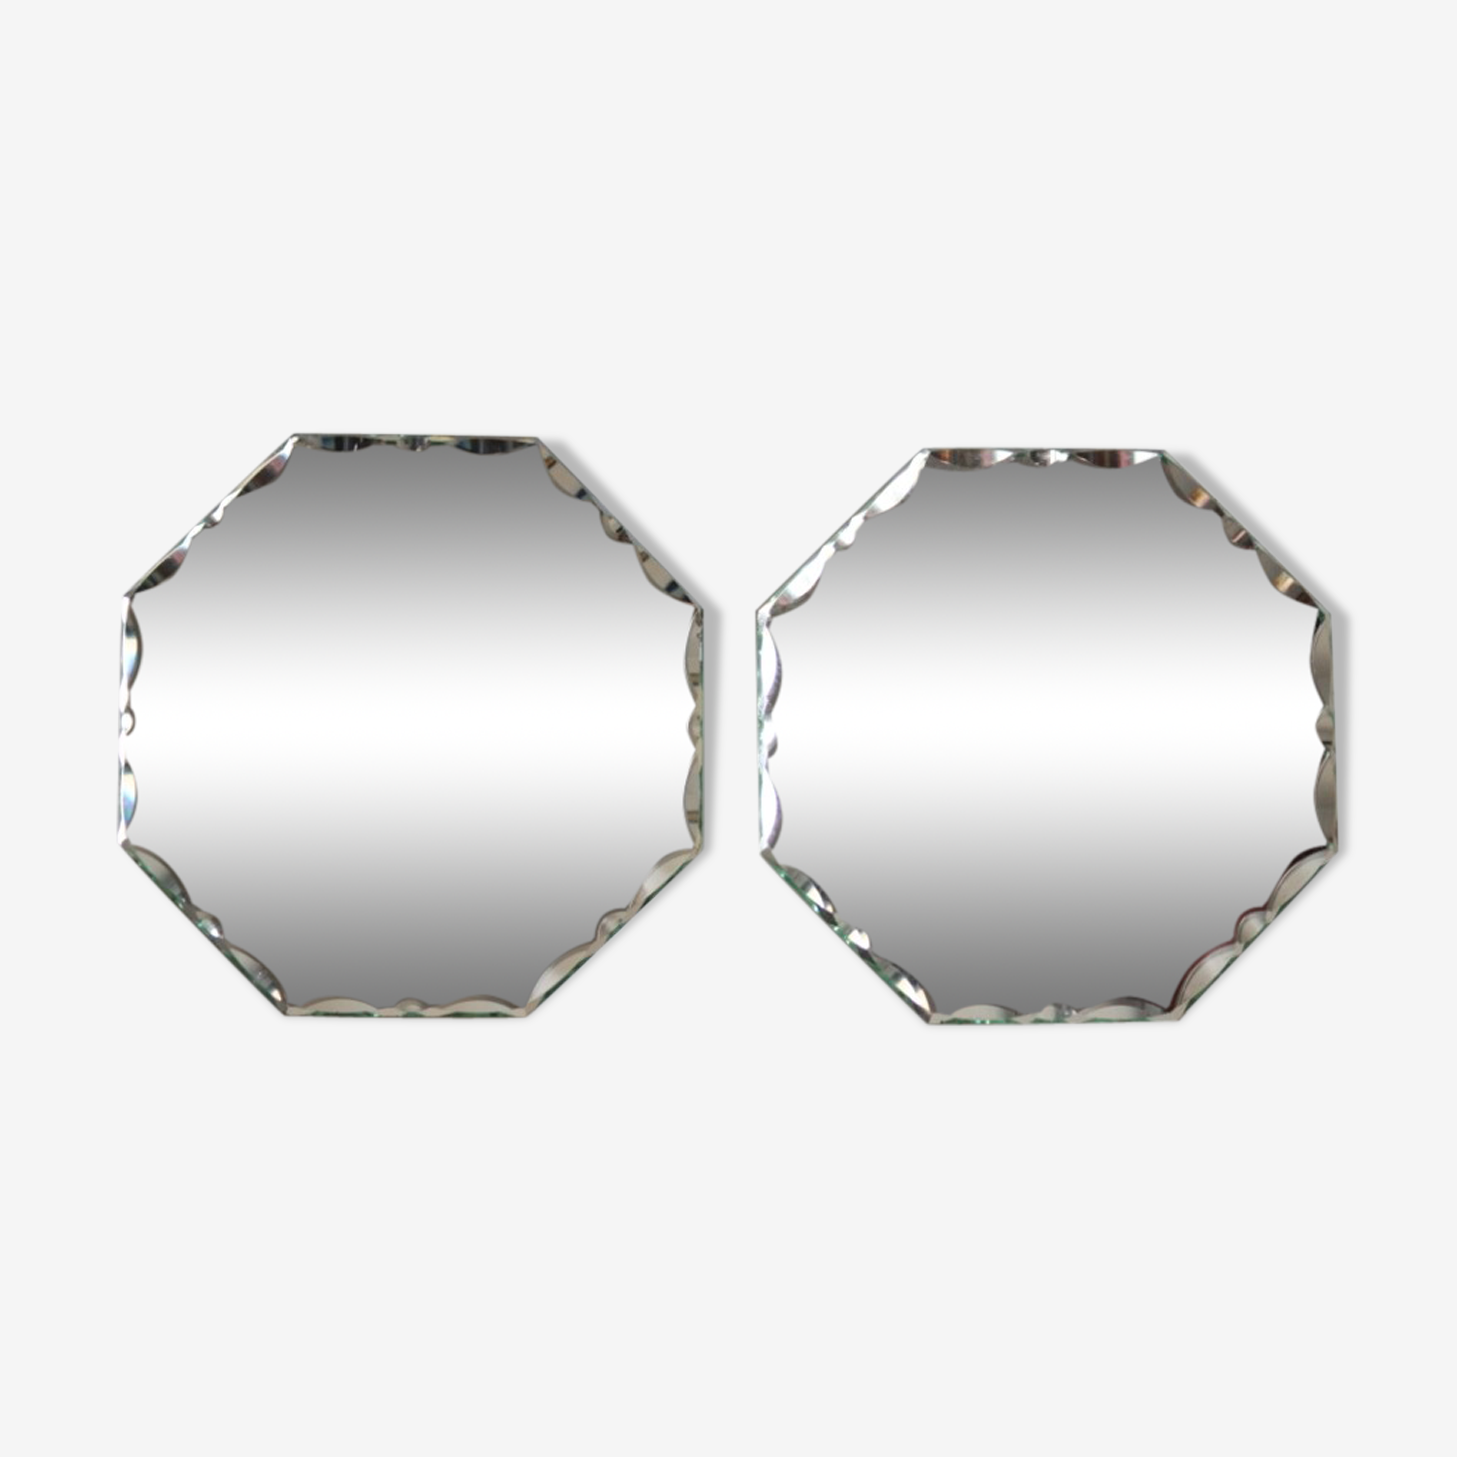 Pair of bevelled mirrors 18 x 18cm